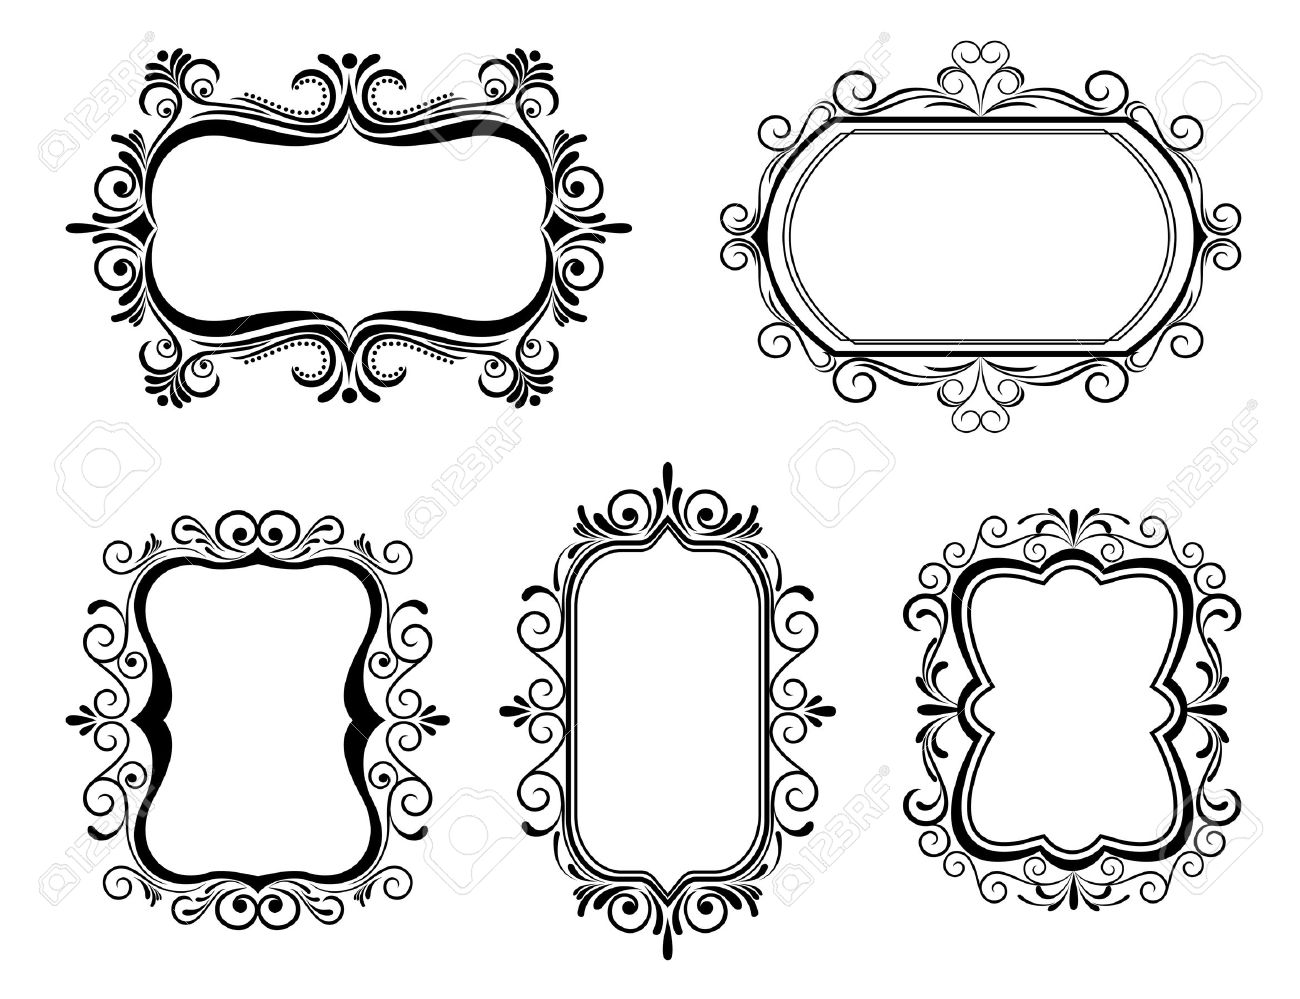 Antique Vintage Frames Isolated On White For Design Royalty Free ...